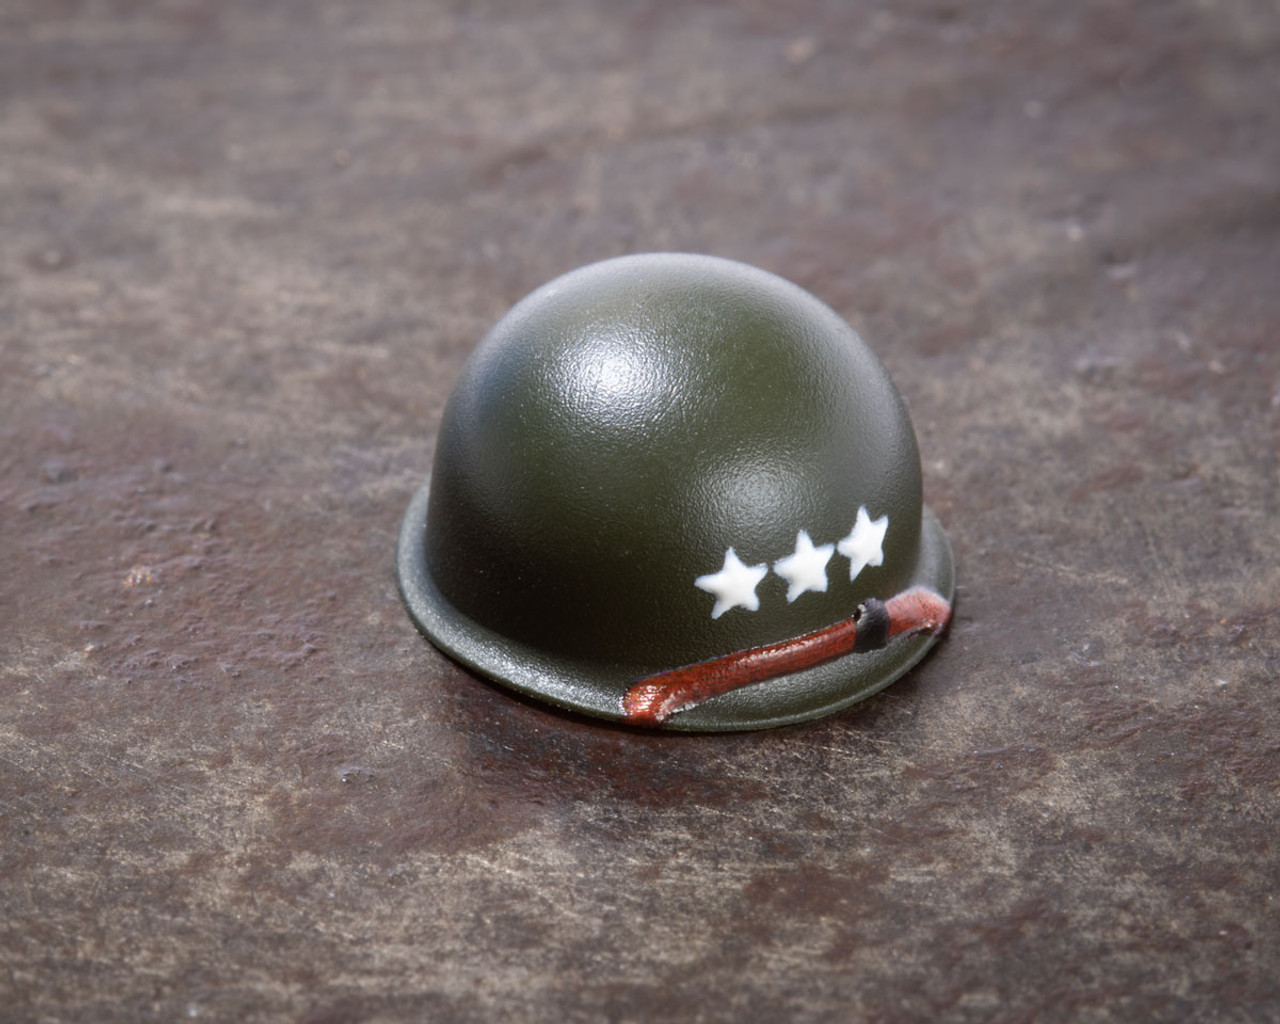 M1 Steel Pot Helmet - Lieutenant General Rank